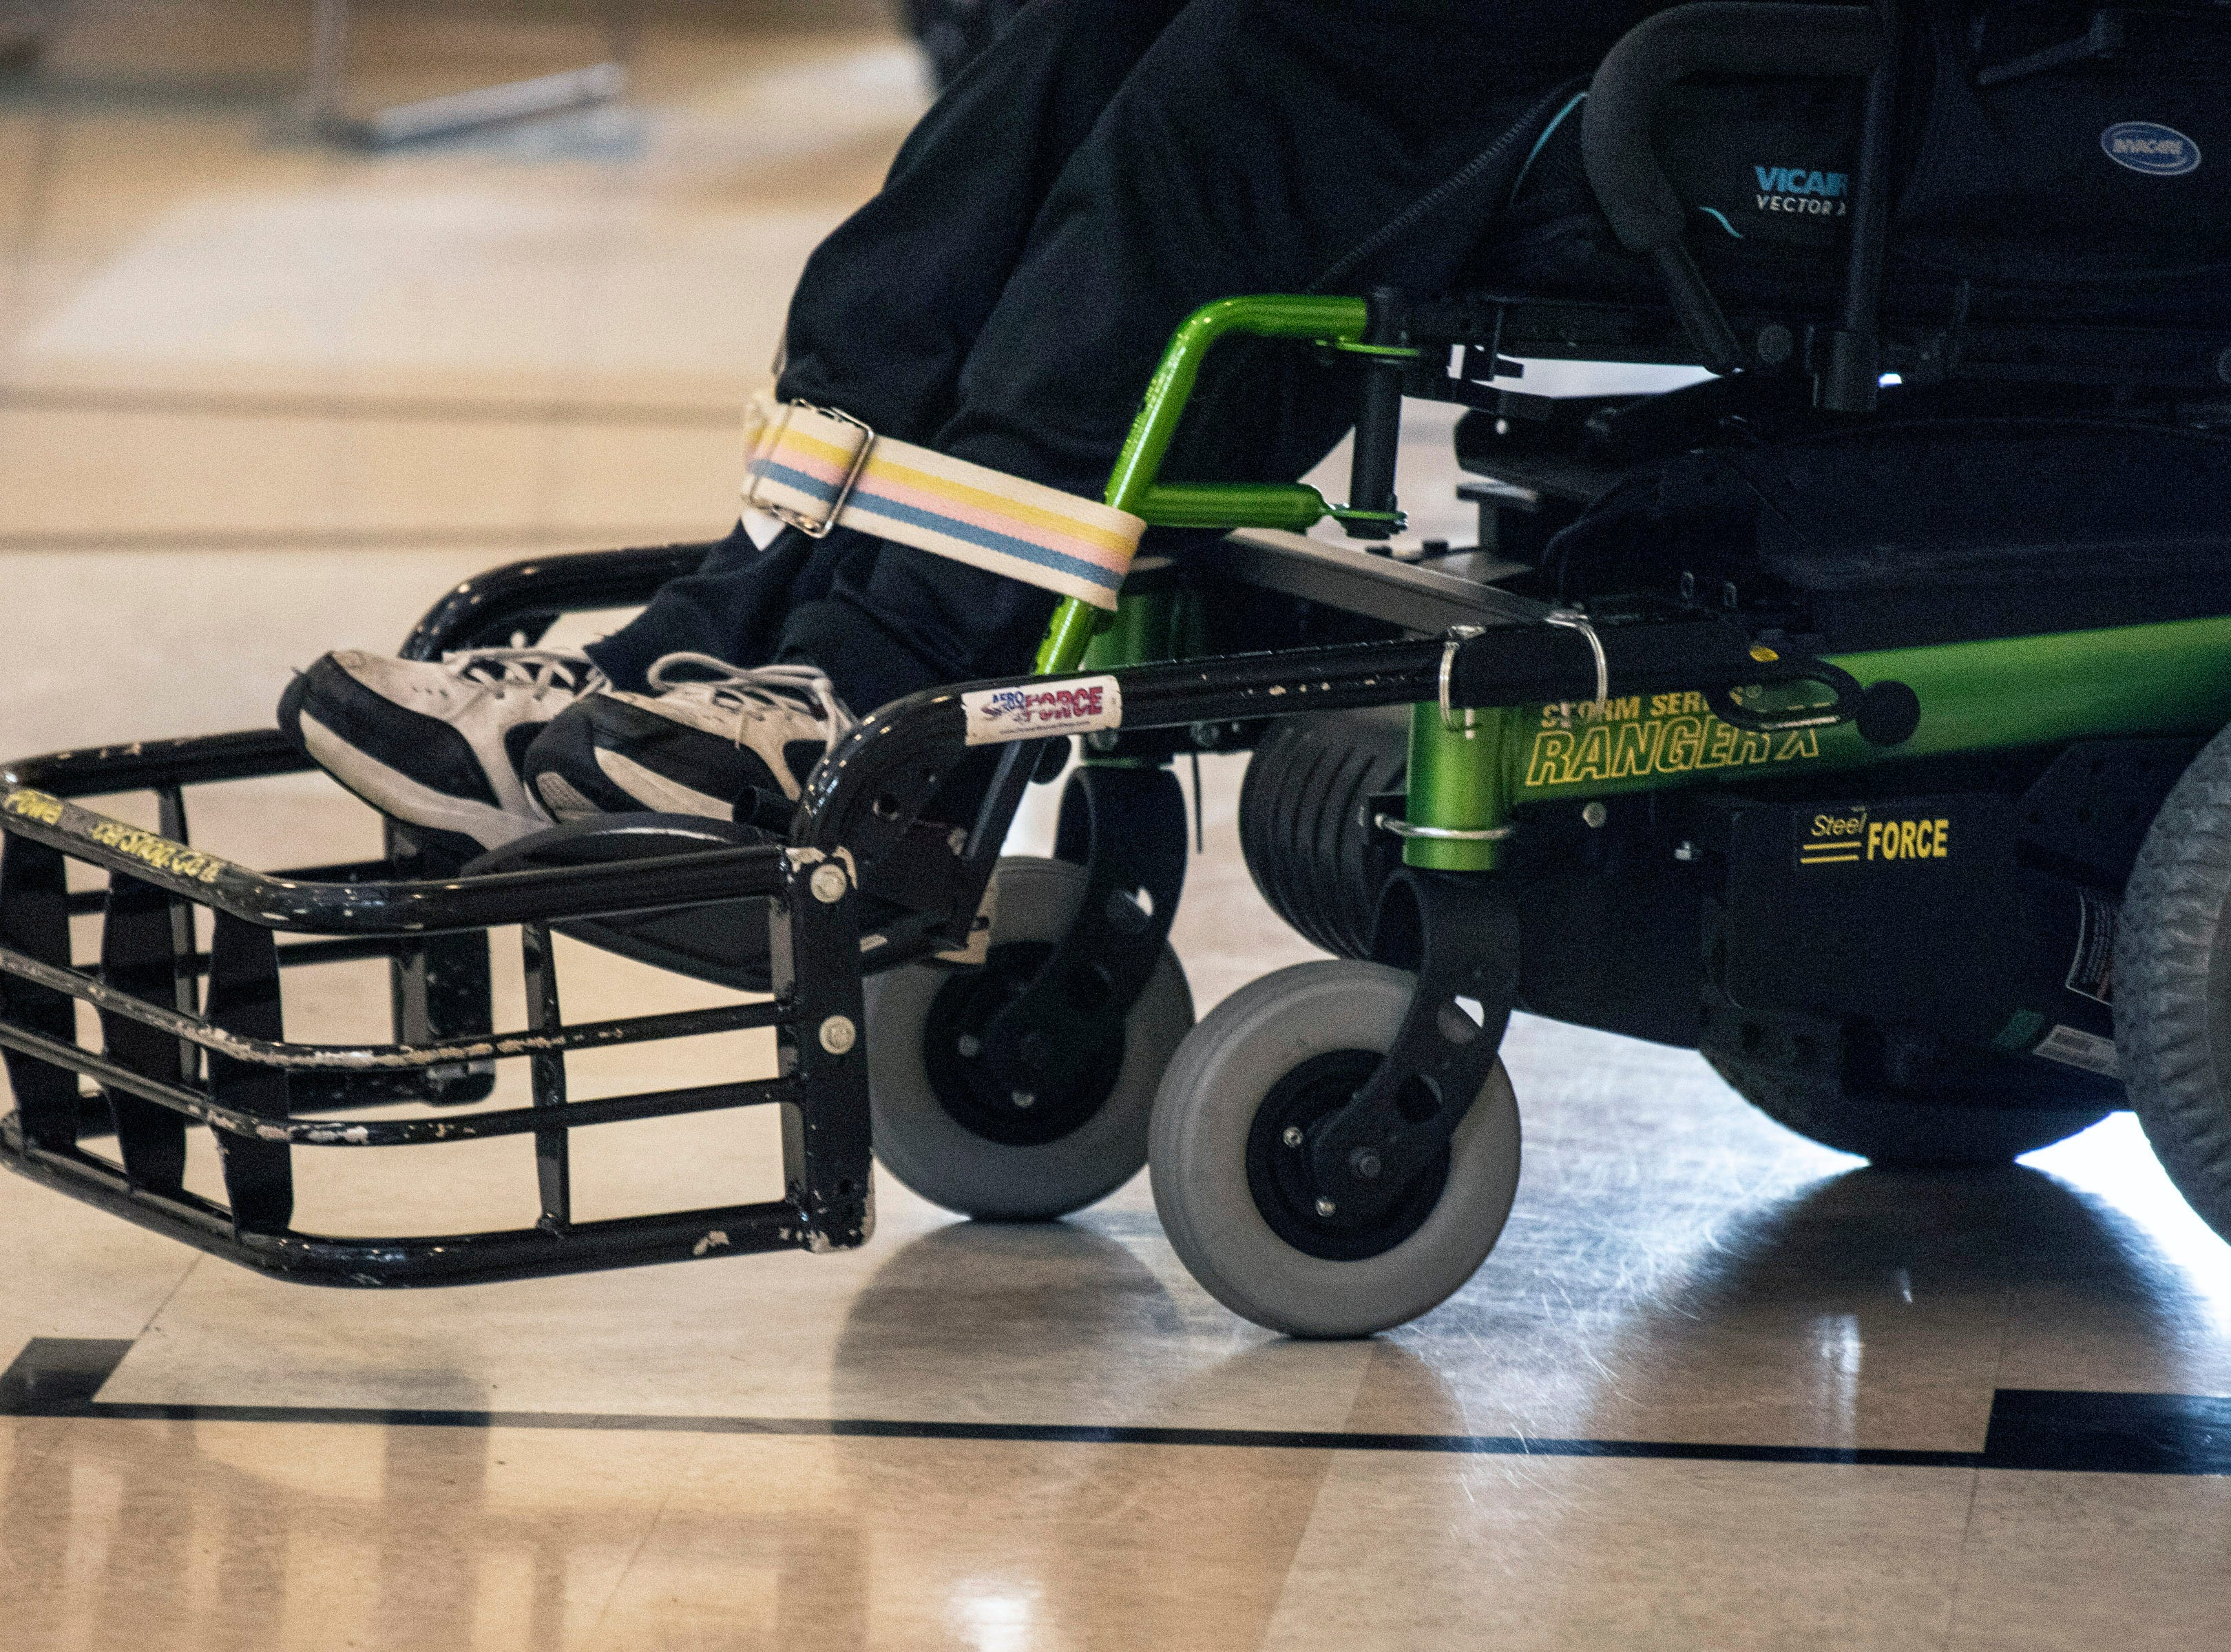 Extended fronts on the powerchair allow the ball to be moved up and down the court by the Louisville City Power Soccer team. April 20, 2019